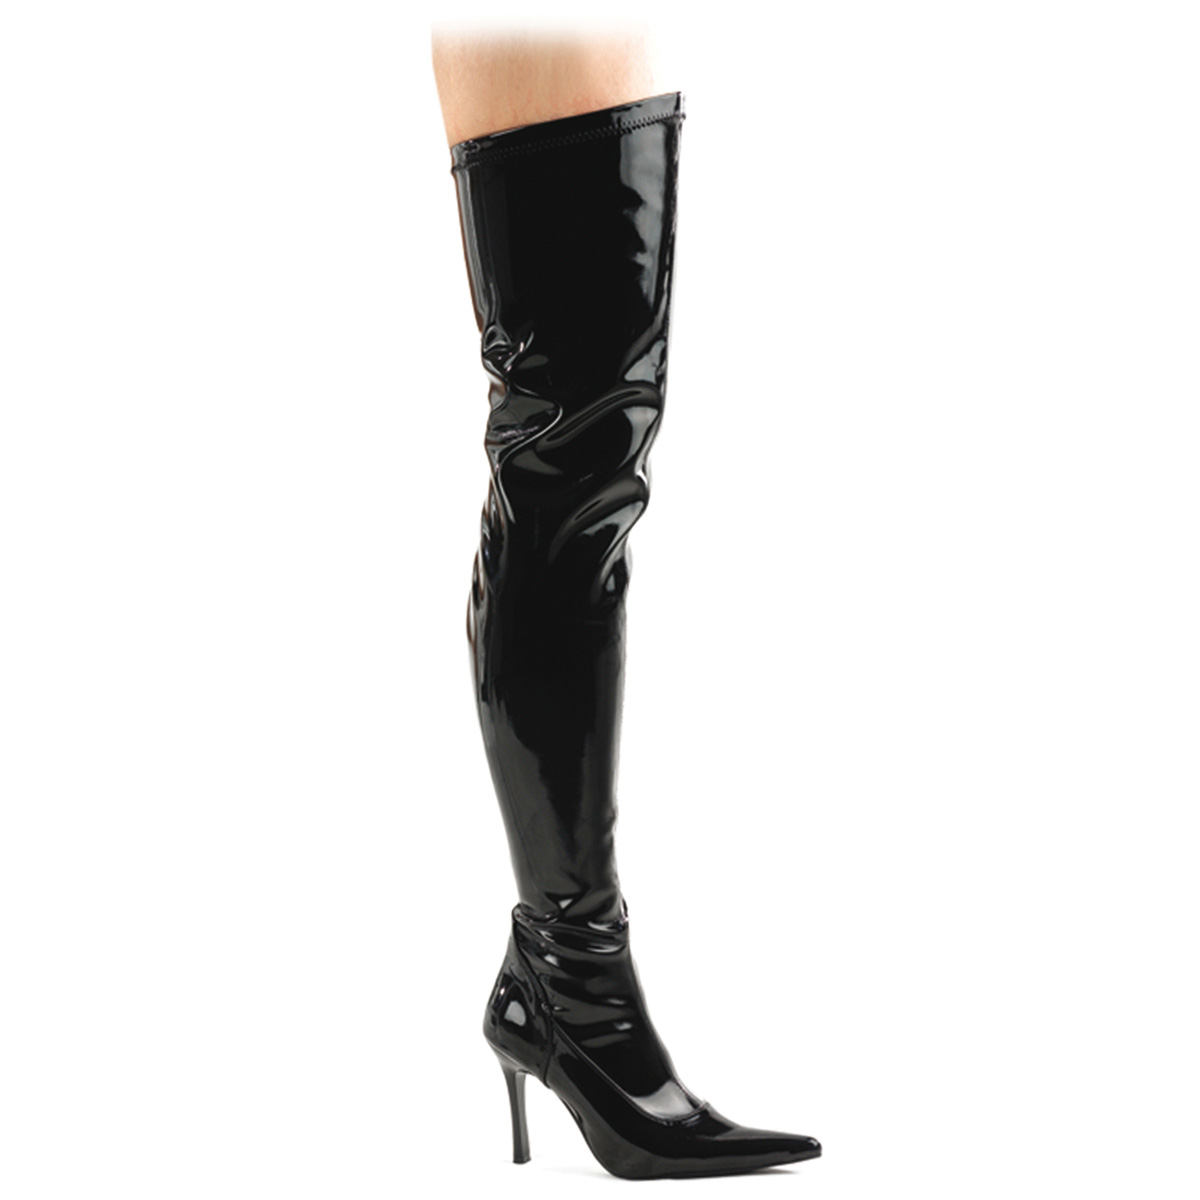 Pleaser Lust-3000 Sexy High Heel Women's Thigh Hi Boots Halloween Costume at Sears.com